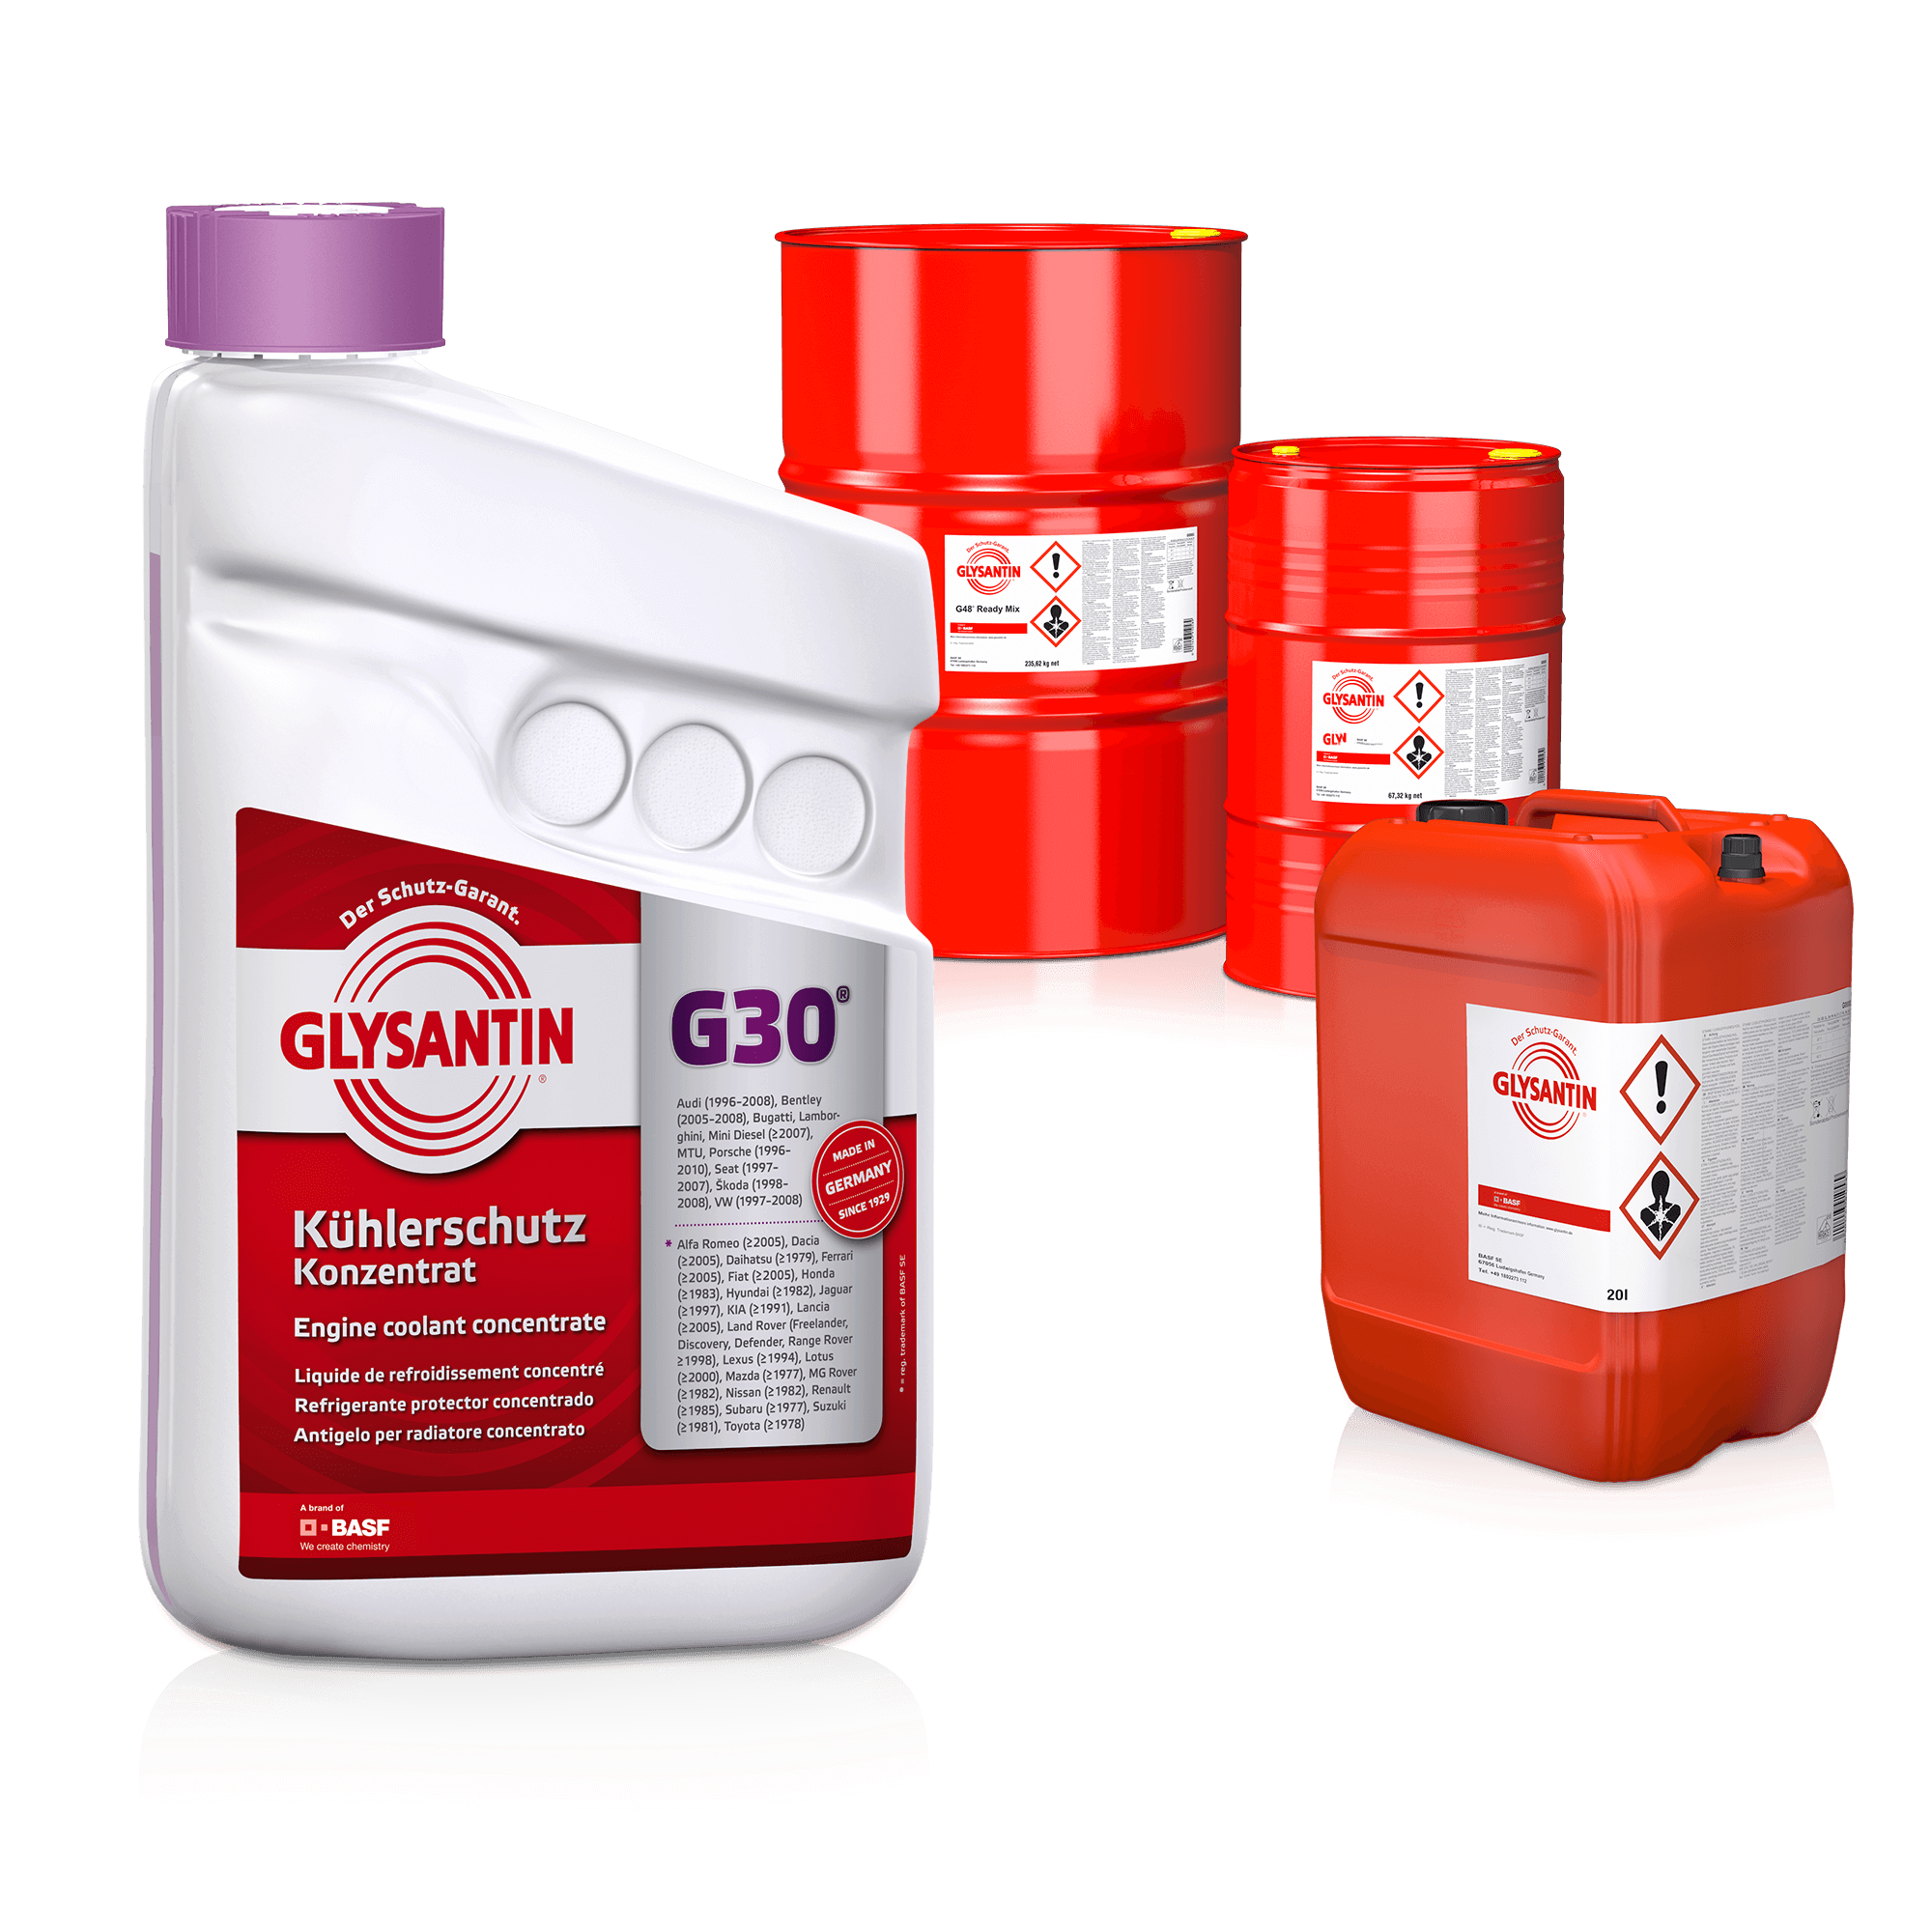 Glysantin G30 Concentrate Engine Coolant Composition The Premium For Your Vehicle